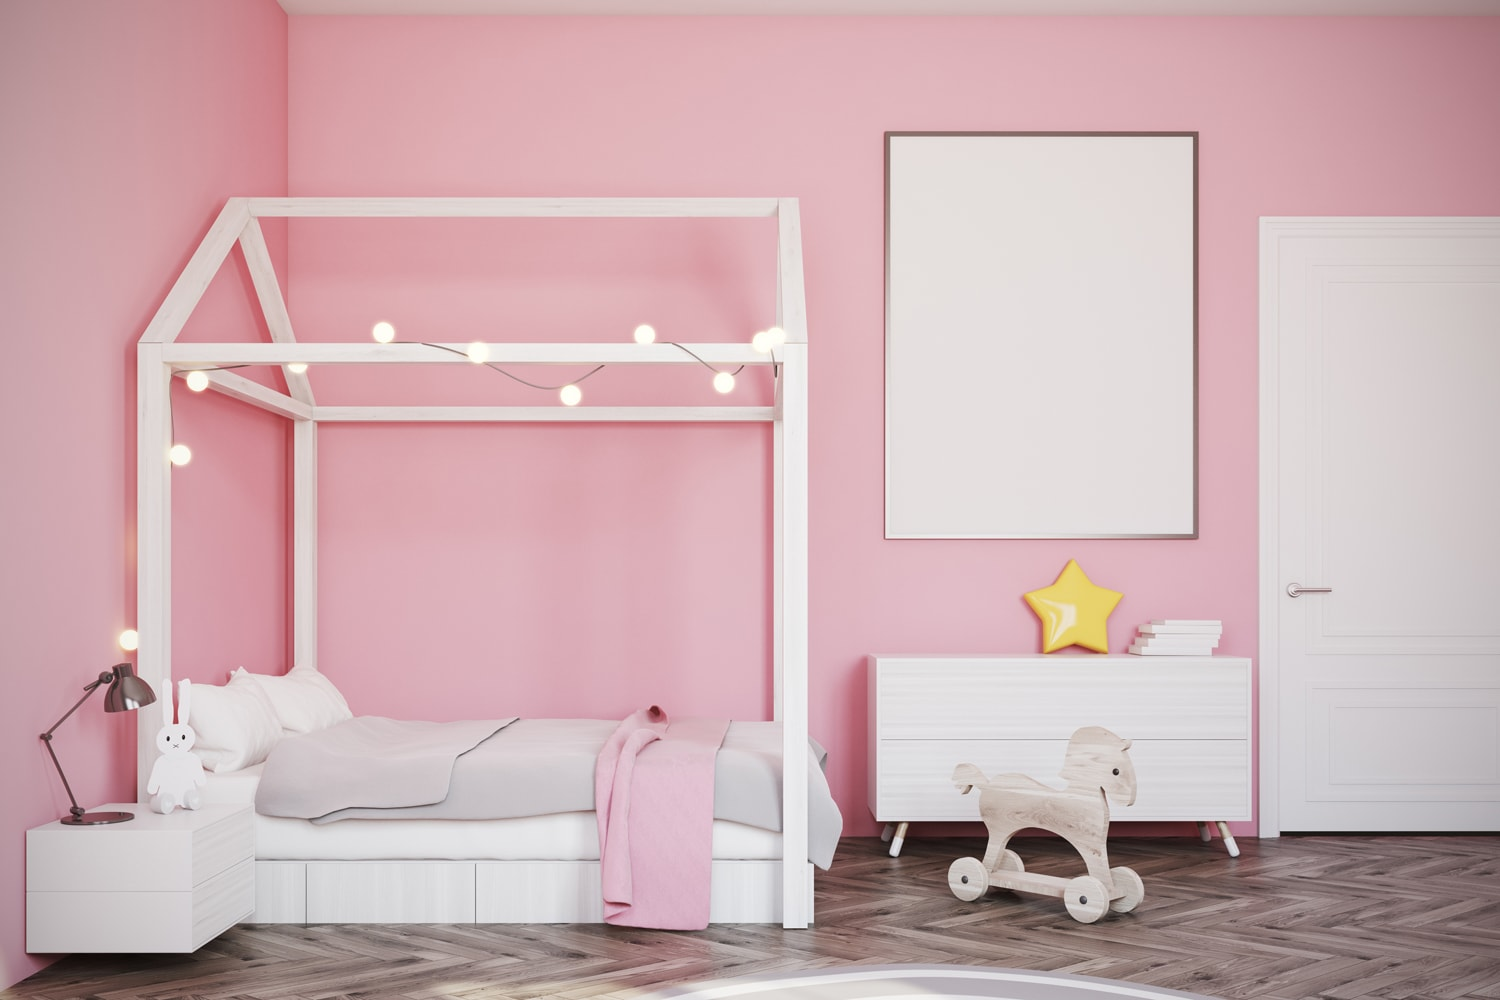 Bedroom Update Ideas For A 3 Year Old Girl What Hannah Did Next